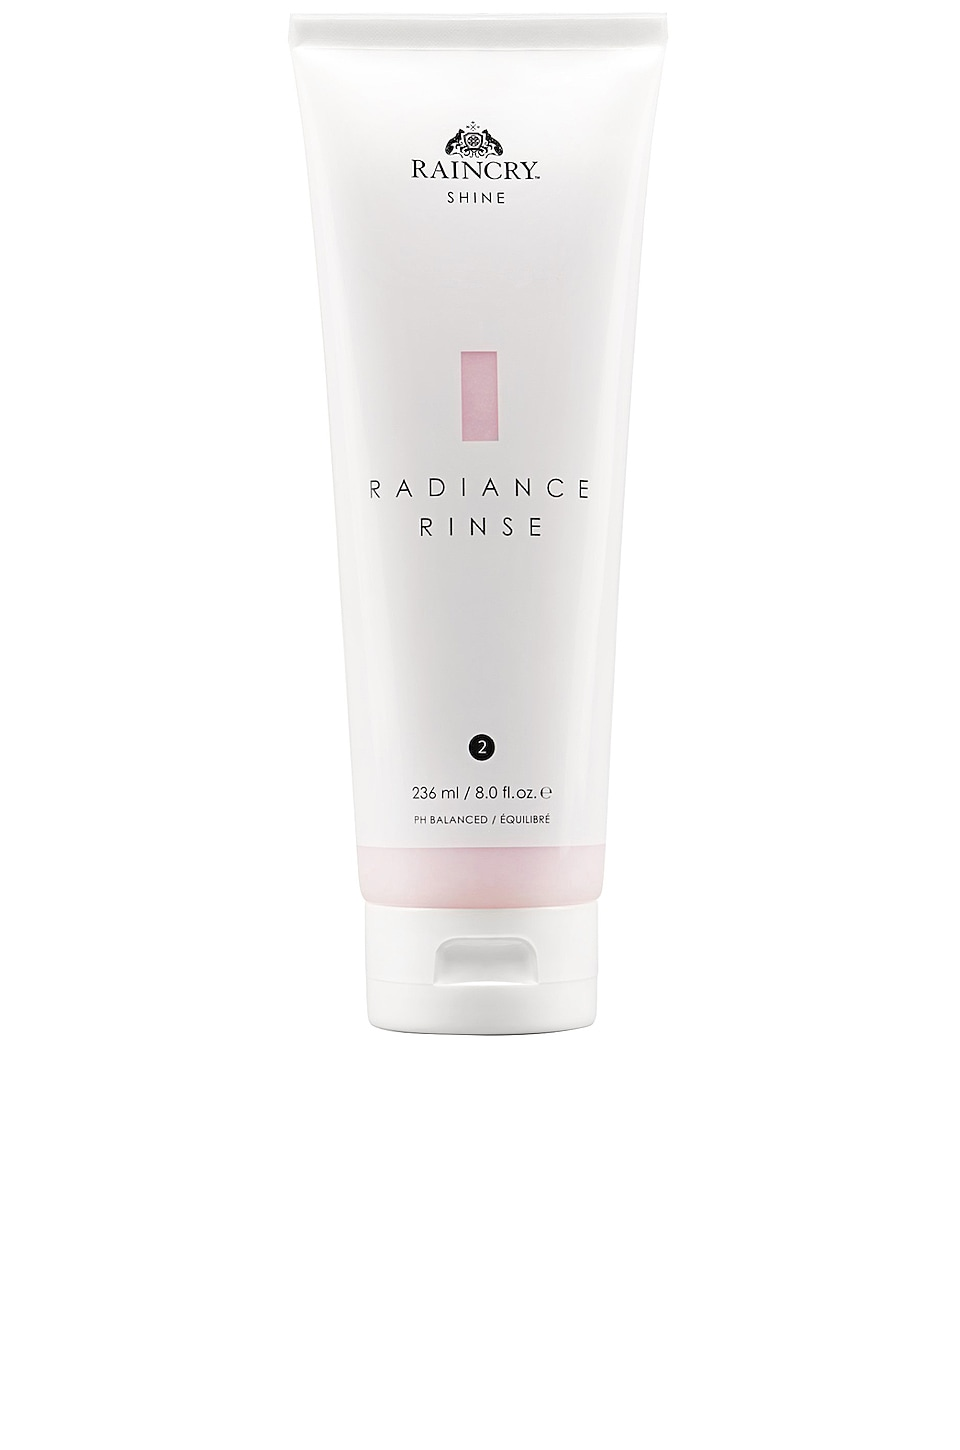 RAINCRY Radiance Rinse Conditioner